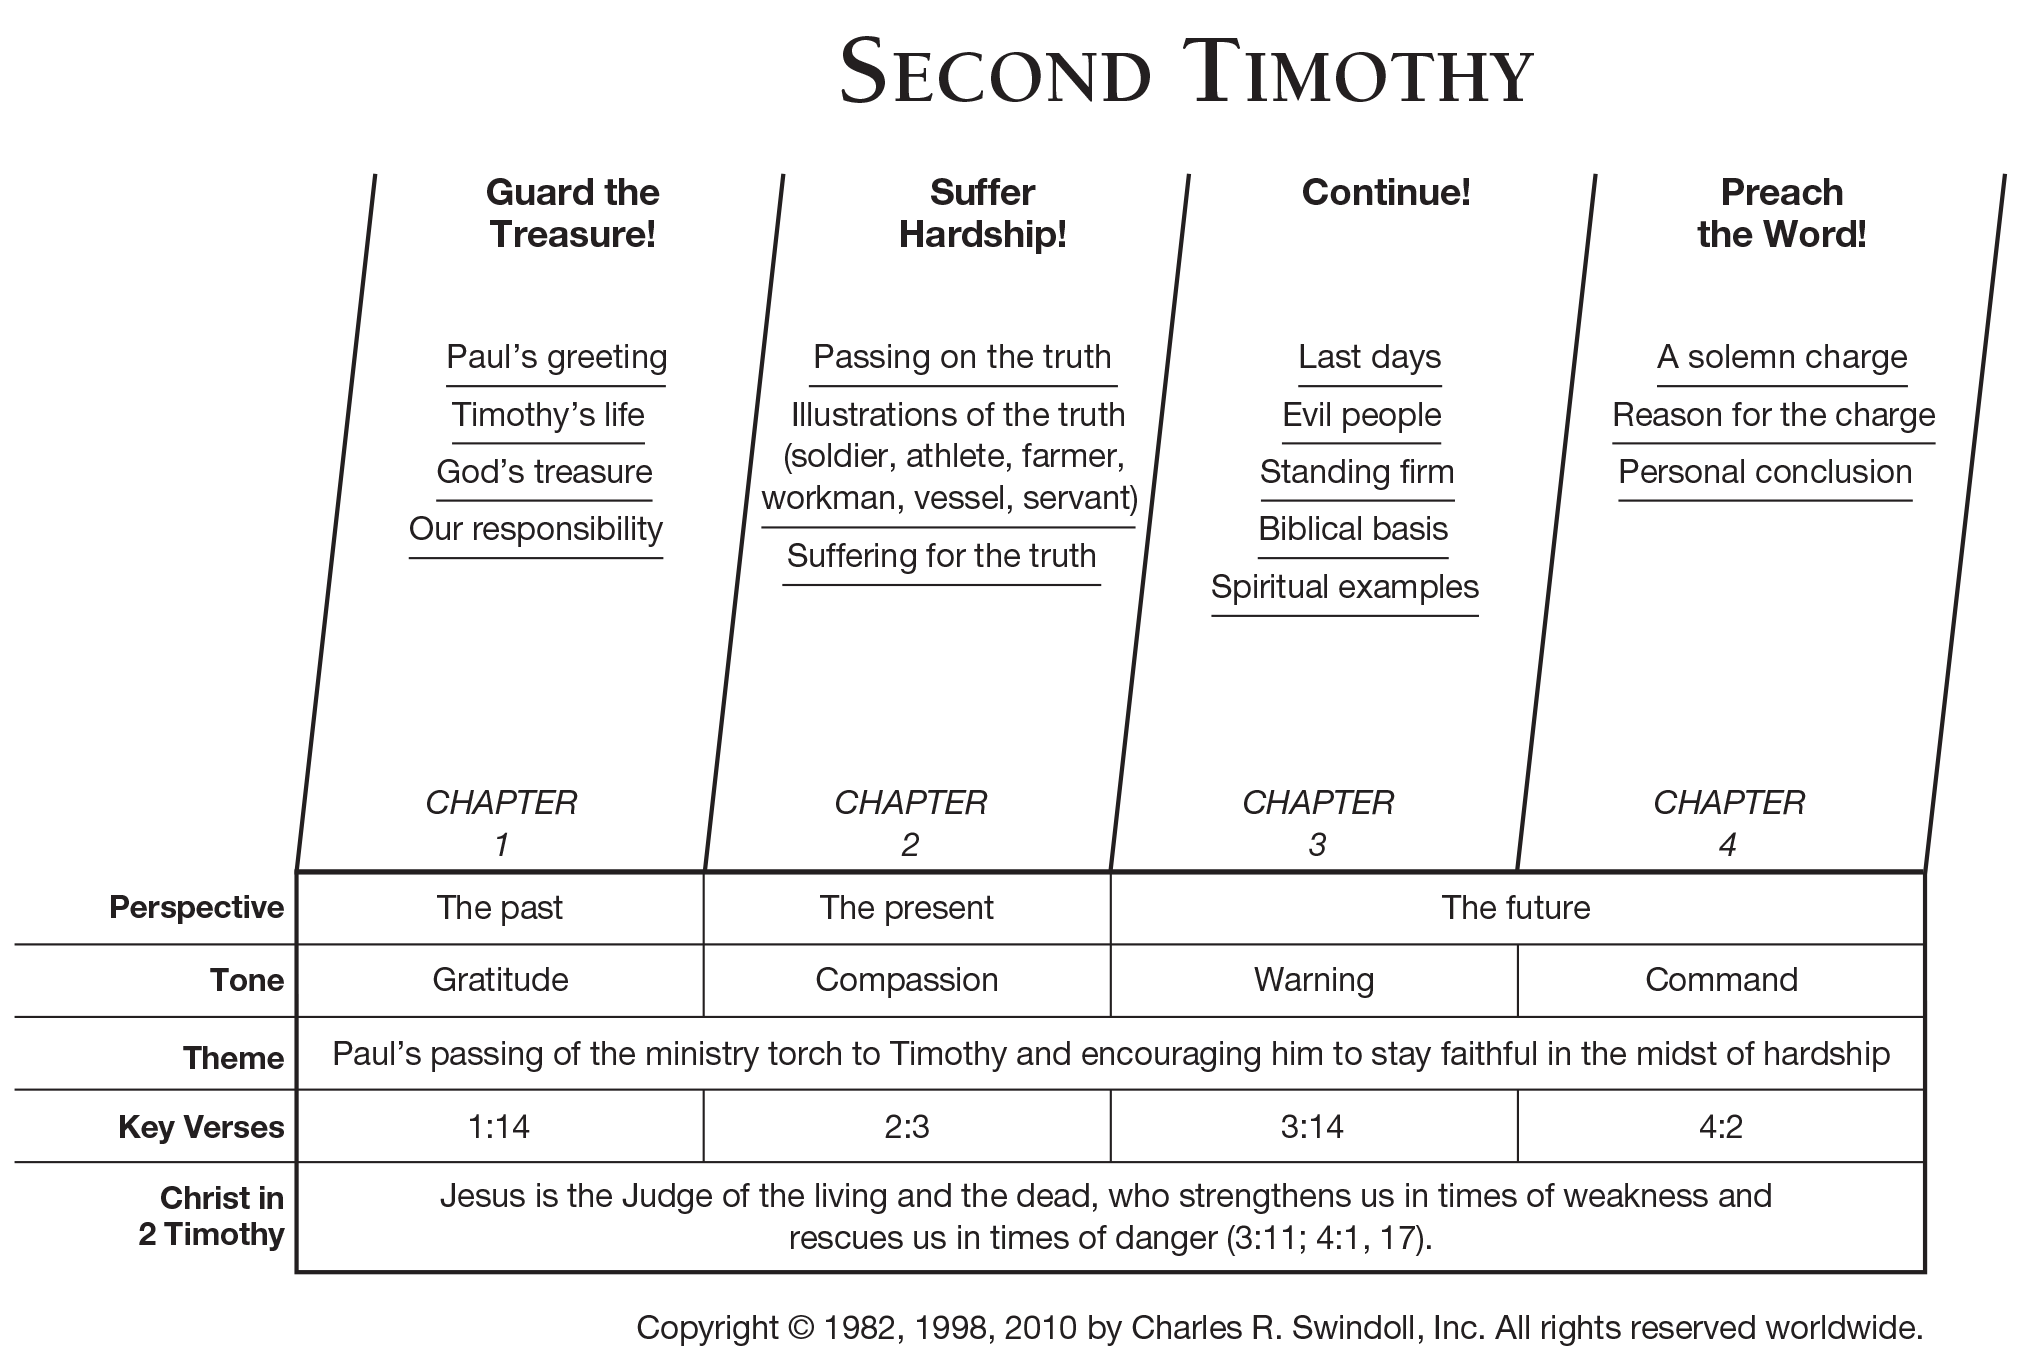 Book Of Second Timothy Overview